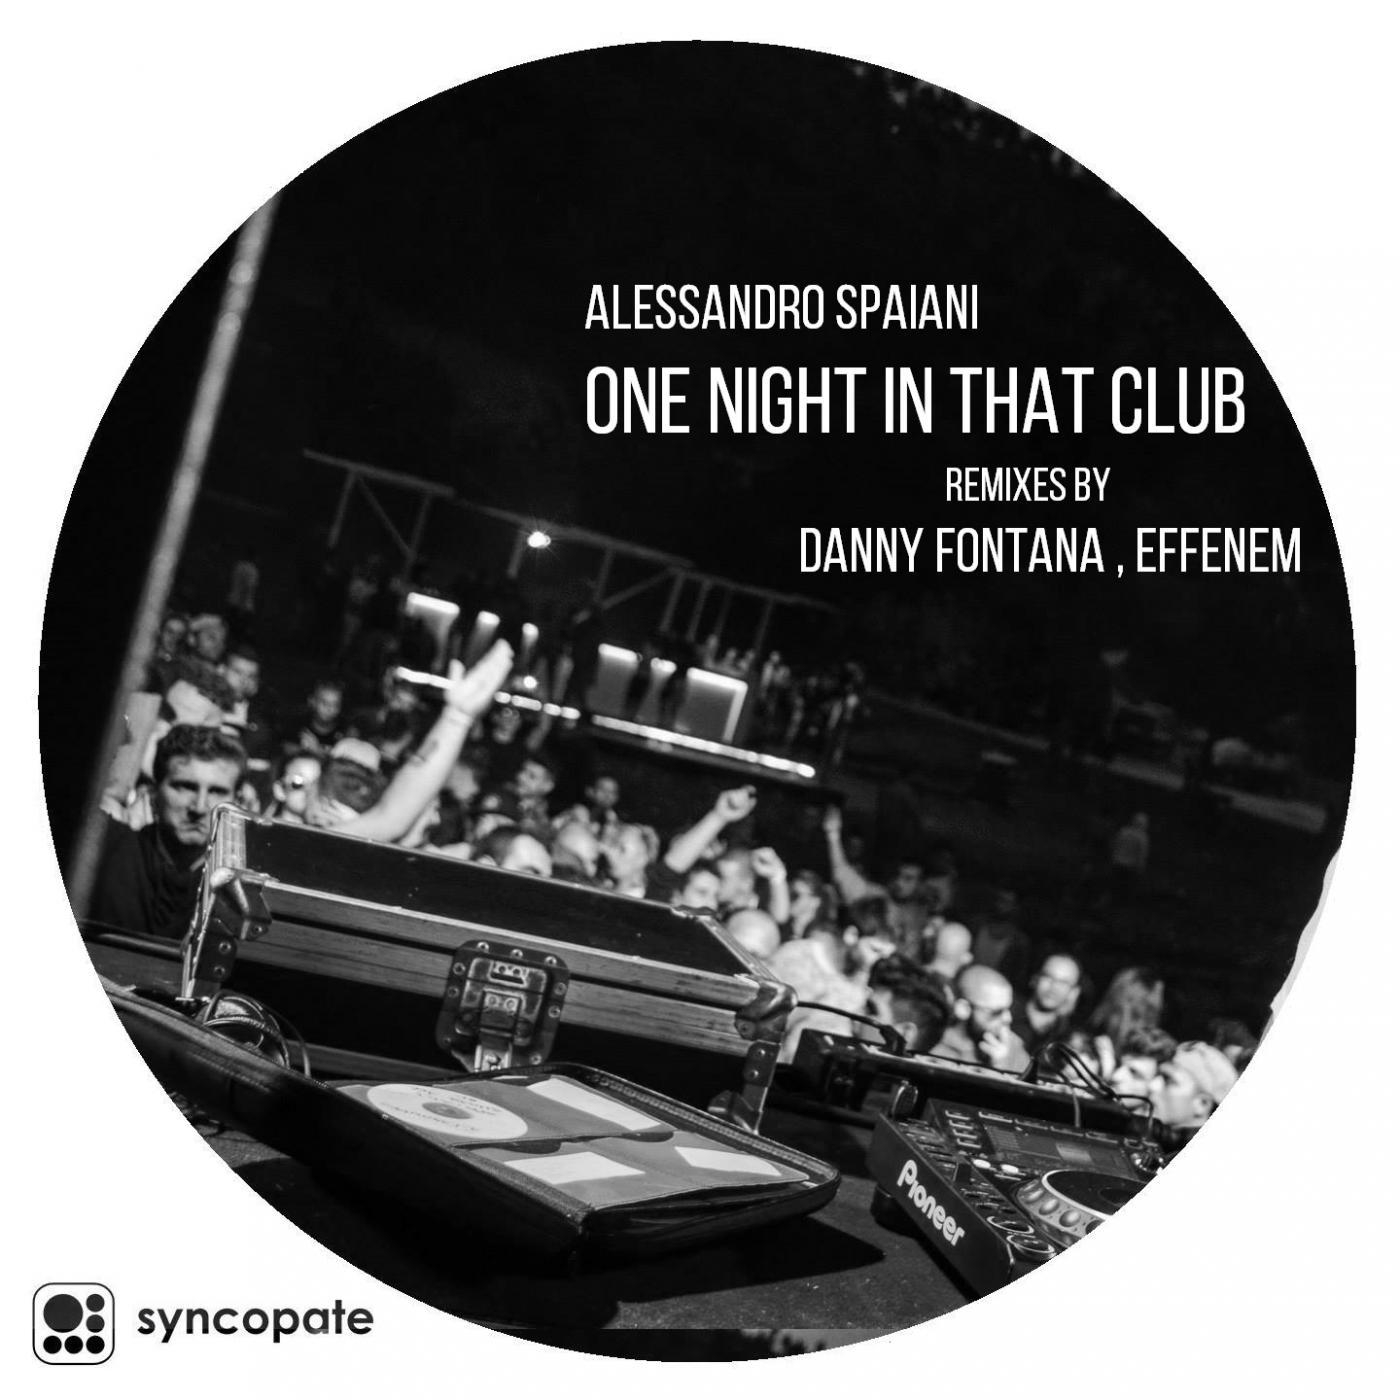 Alessandro Spaiani - One Night In That Club (Effenem Remix)